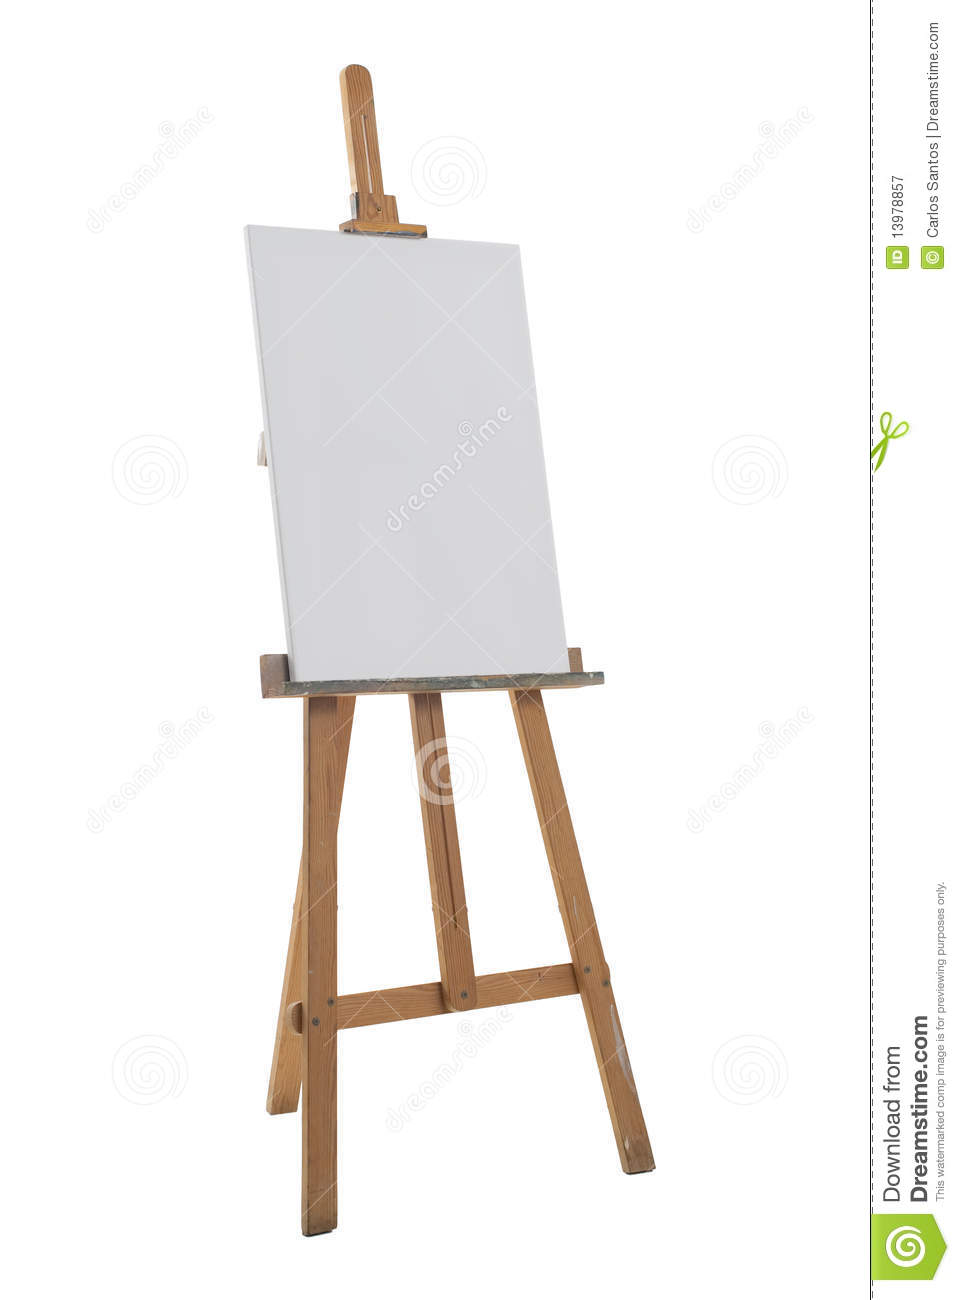 Clean canvas on a easel isolated on a white background.